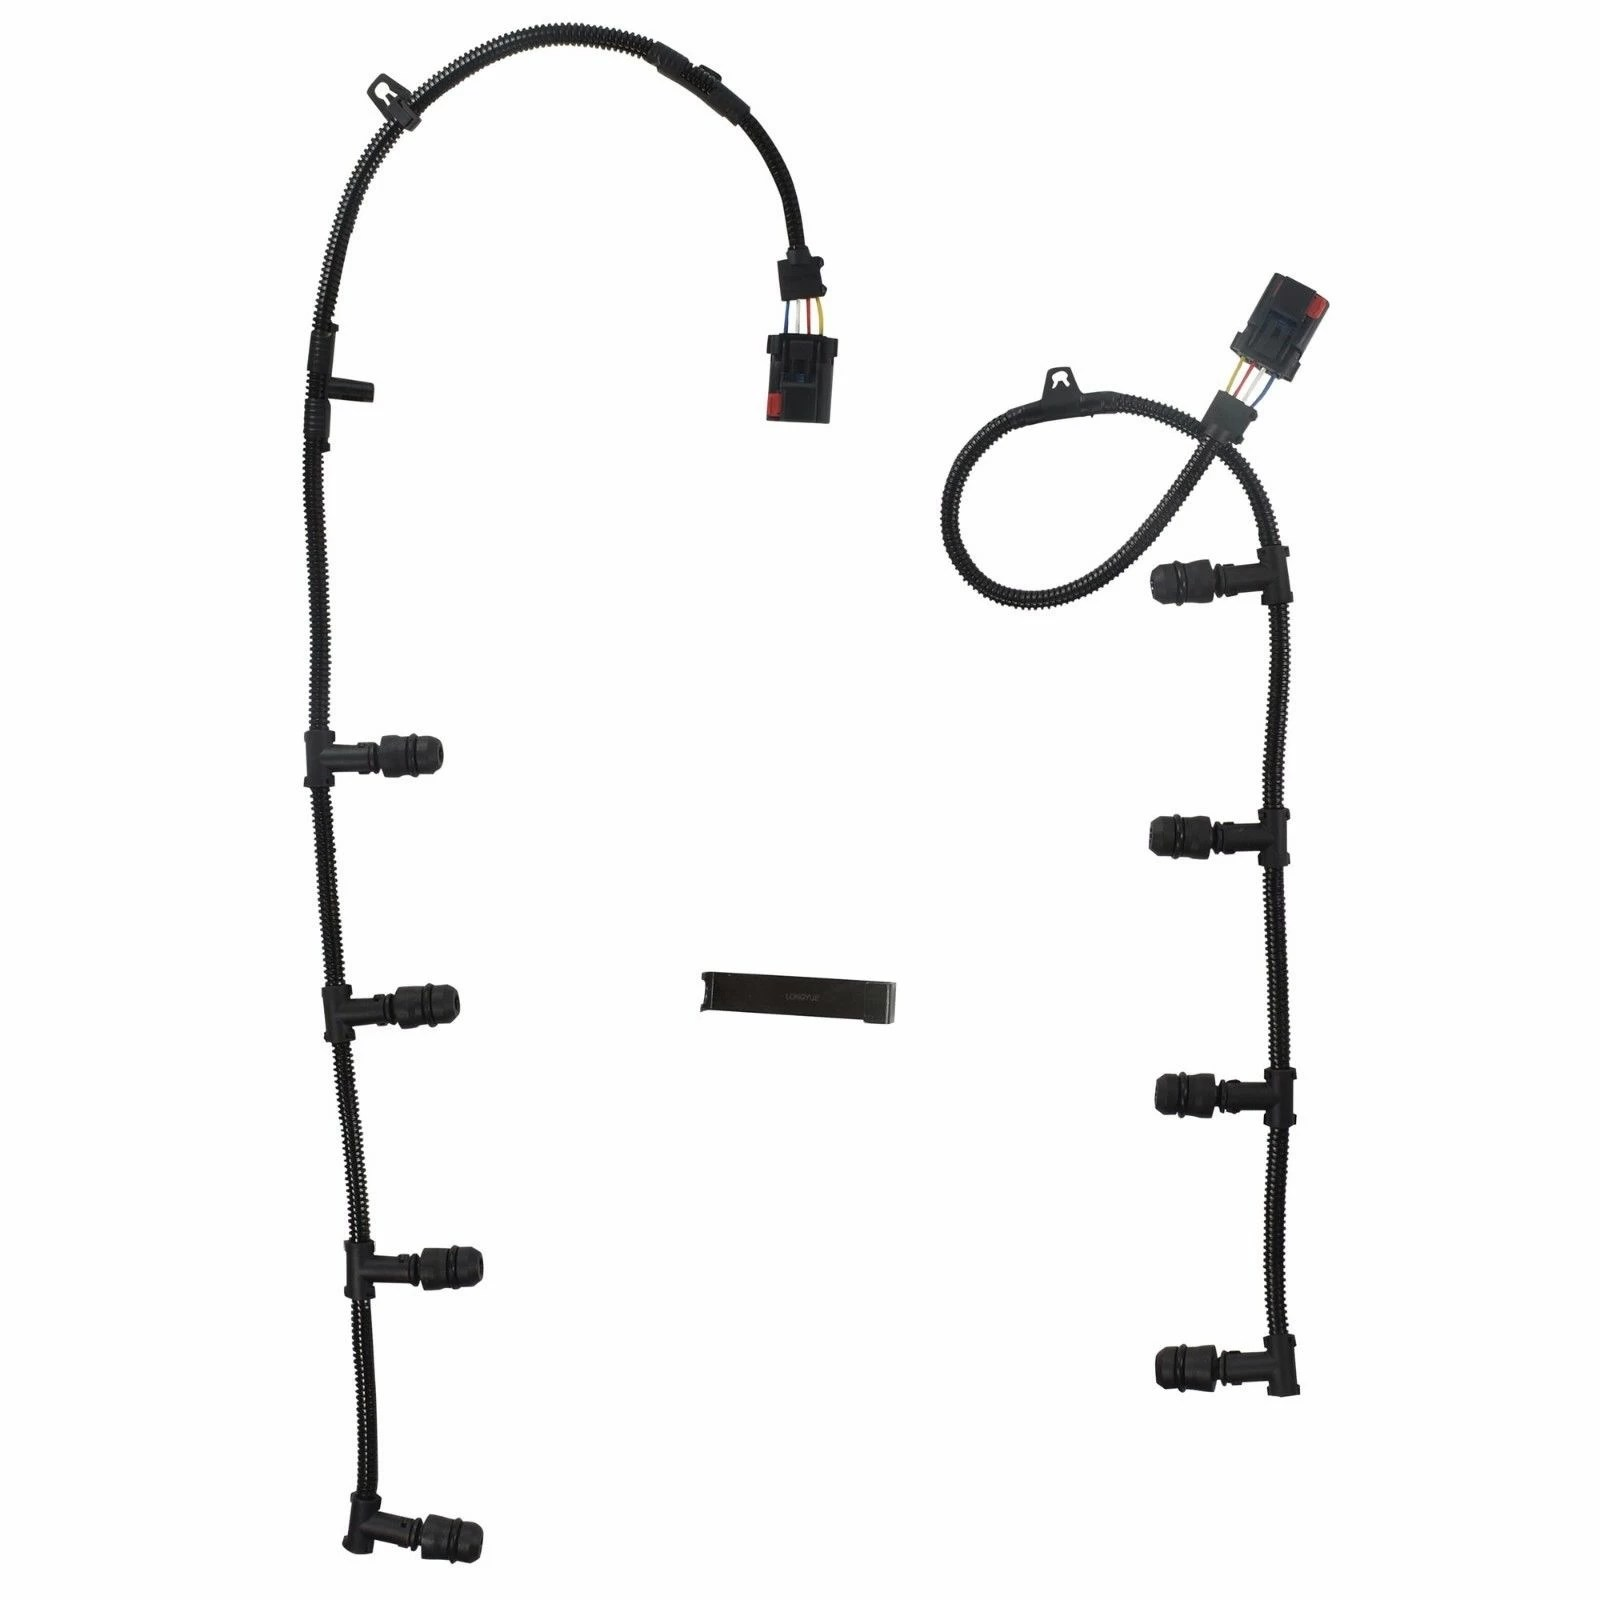 Glow Plug Harness Set For 6 0l 04 5 10 Powerstroke